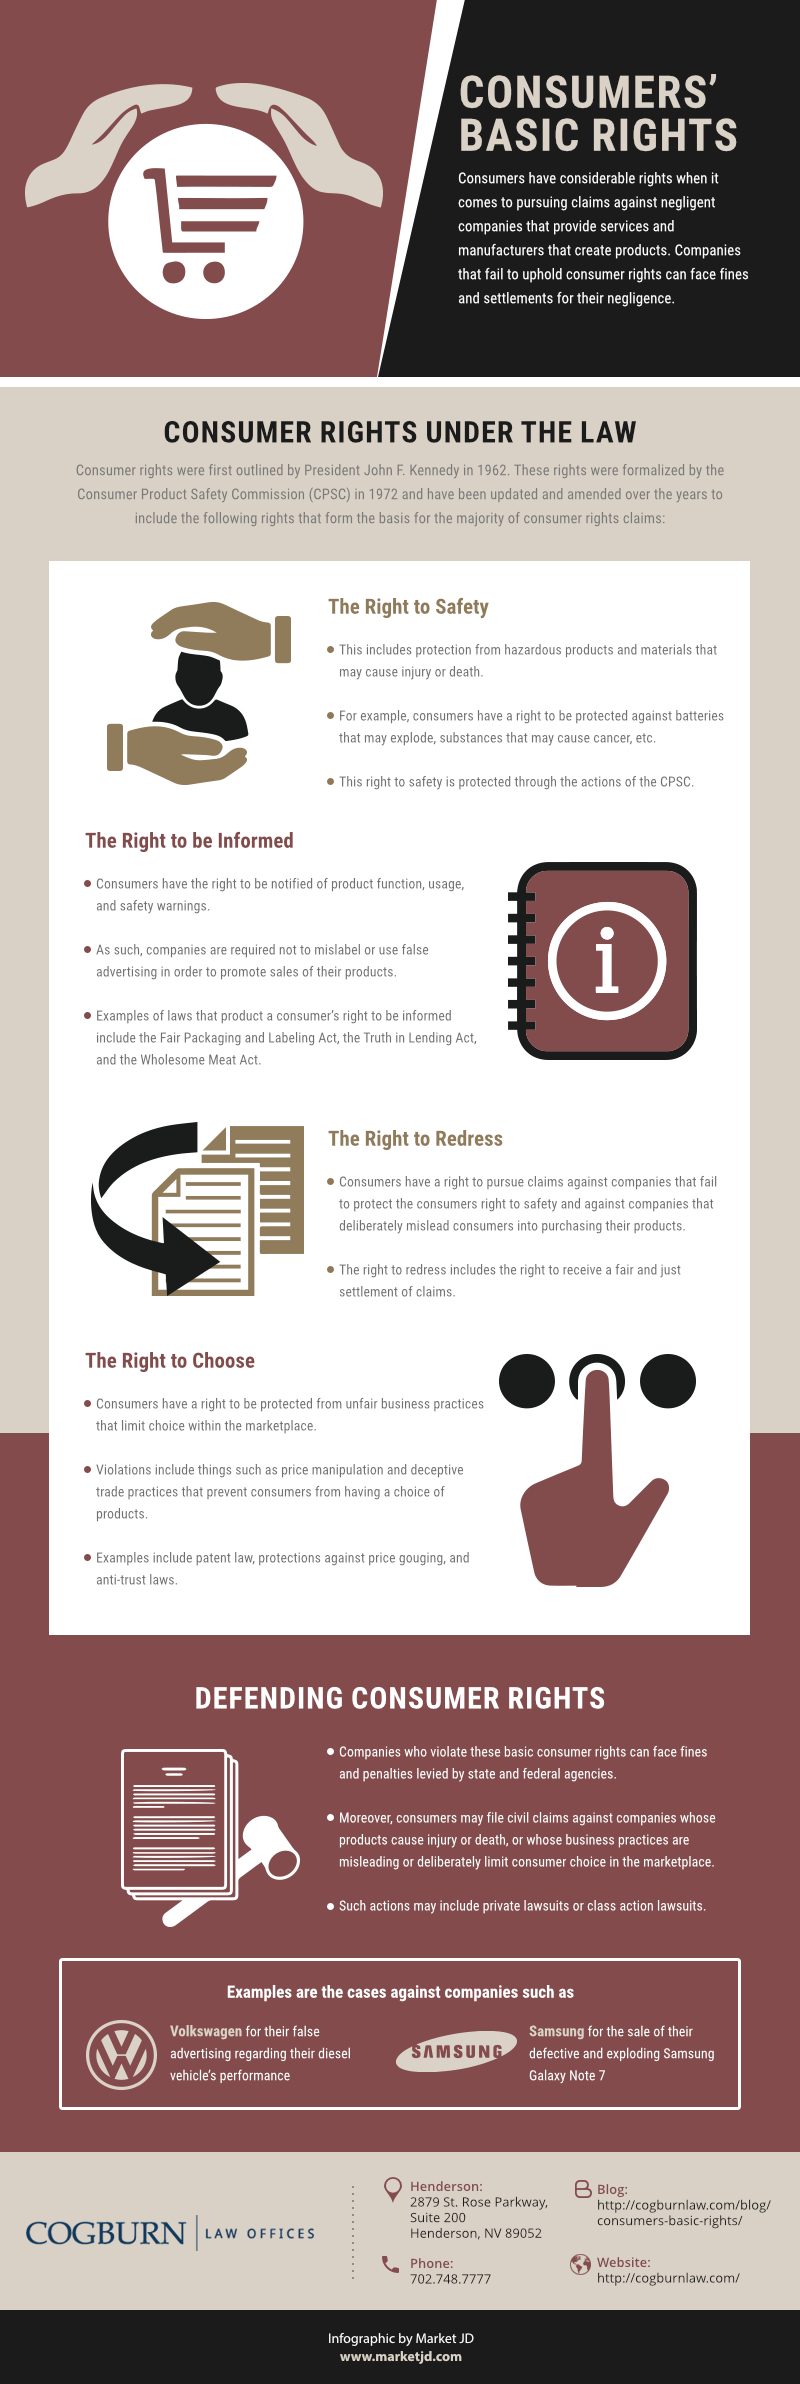 infographic_Basic Rights of Consumers